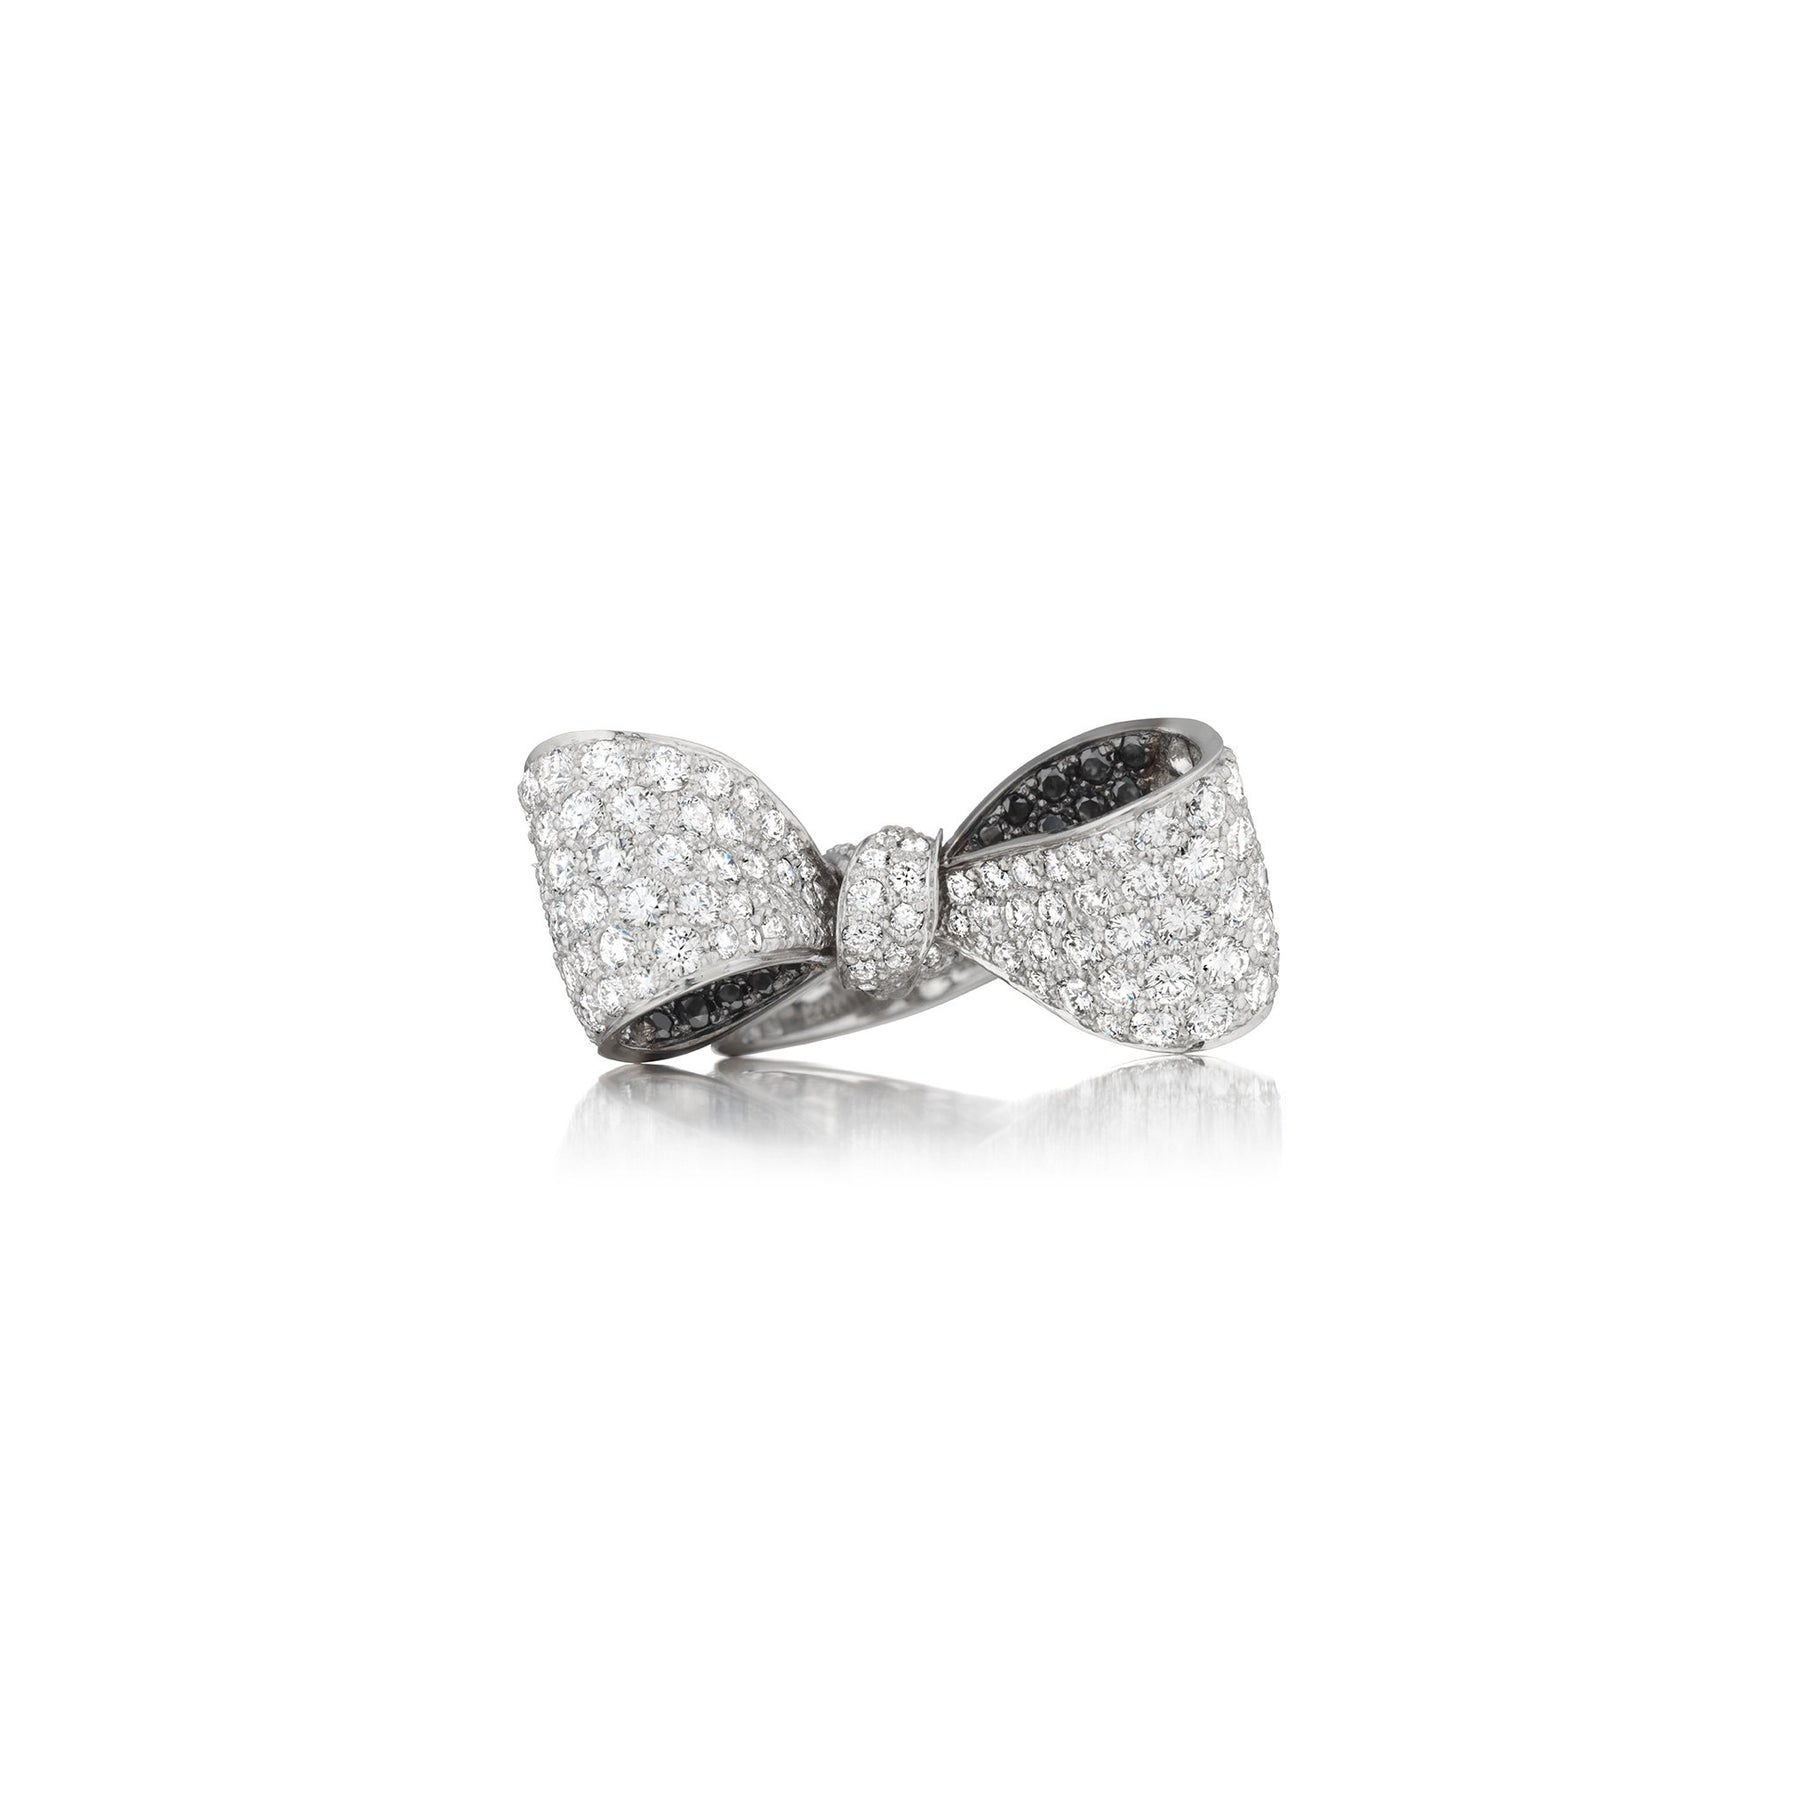 Mimi-So-Black-and-White-Diamond-Bow-Ring_18k White/Black Gold